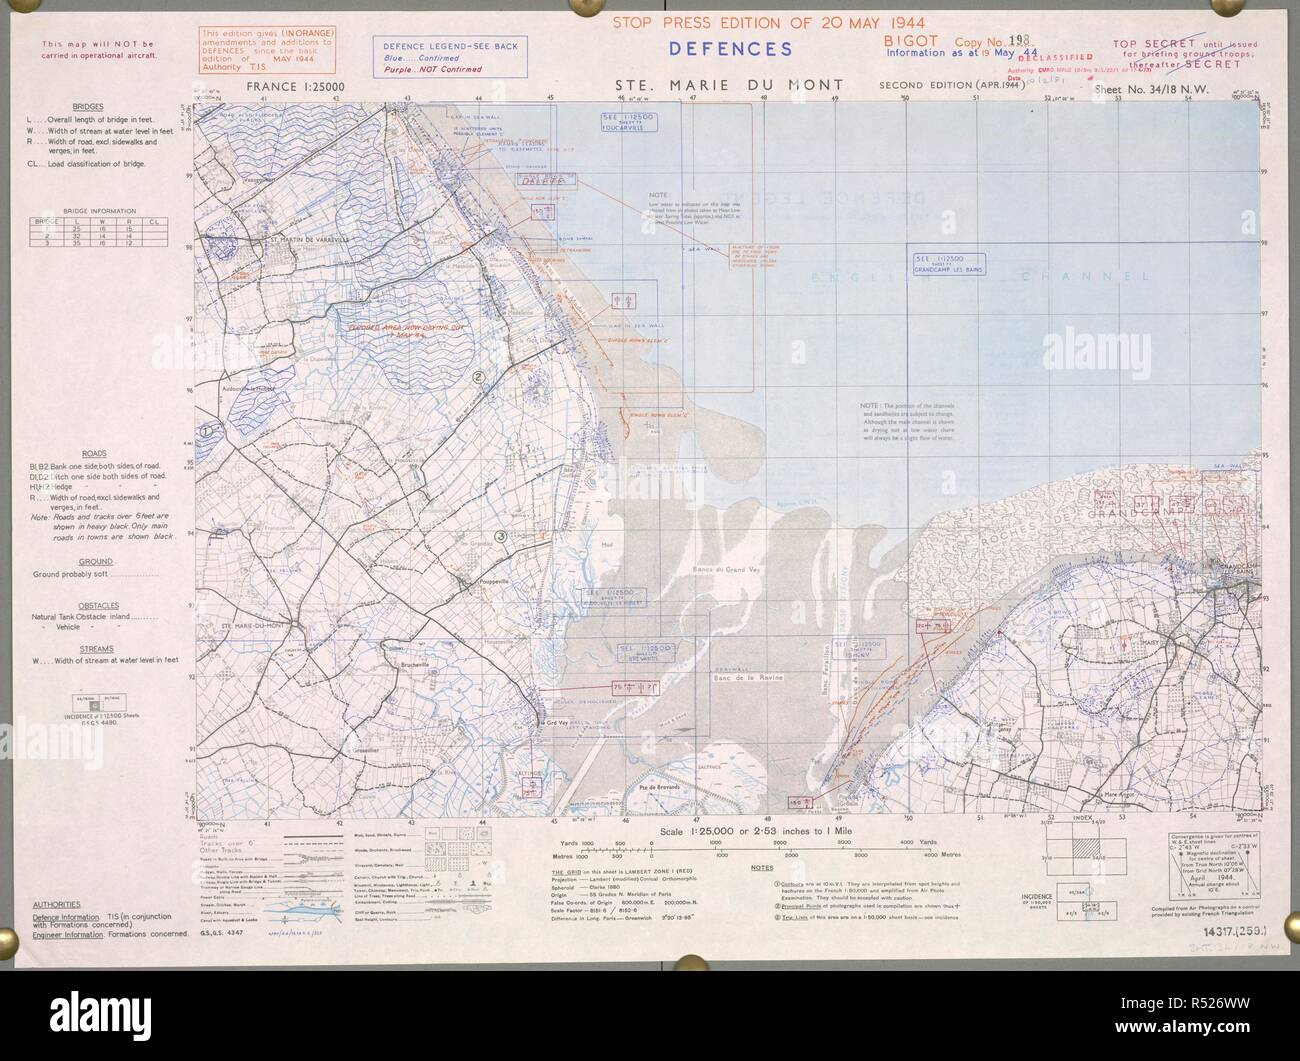 Ste Marie Du Mont Sainte Marie Du Mont France Utah Beach A Map Of The Second World War It Is Best Known For Being The Scene Of Military Engagement Between The American 101st Airborne Division